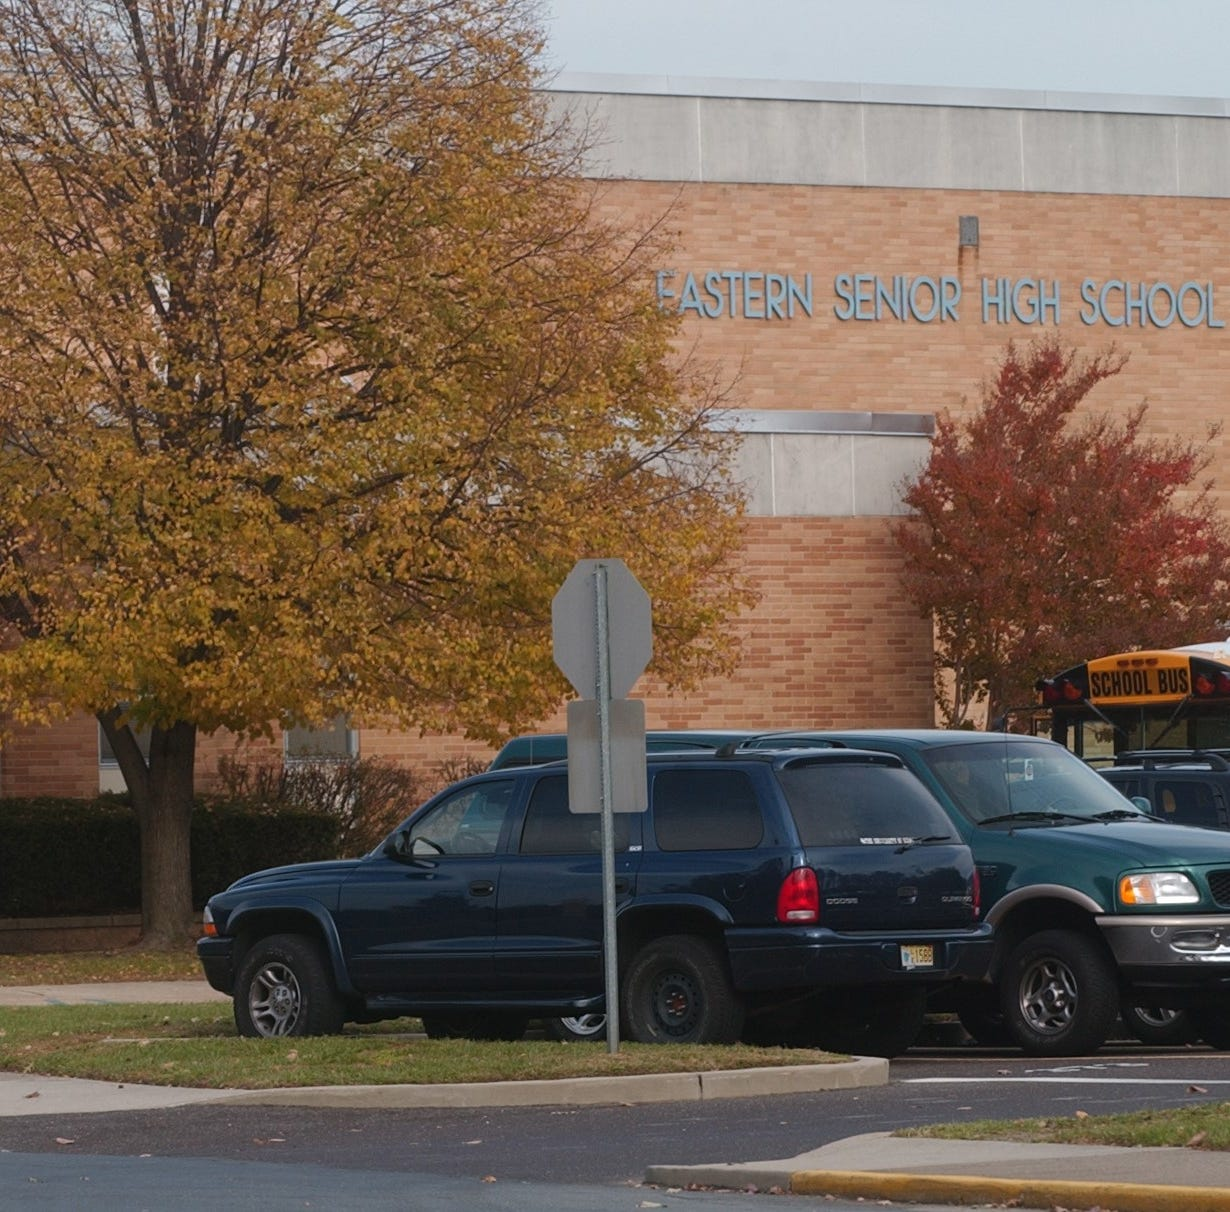 Eastern tightens student drop-off process over security concerns